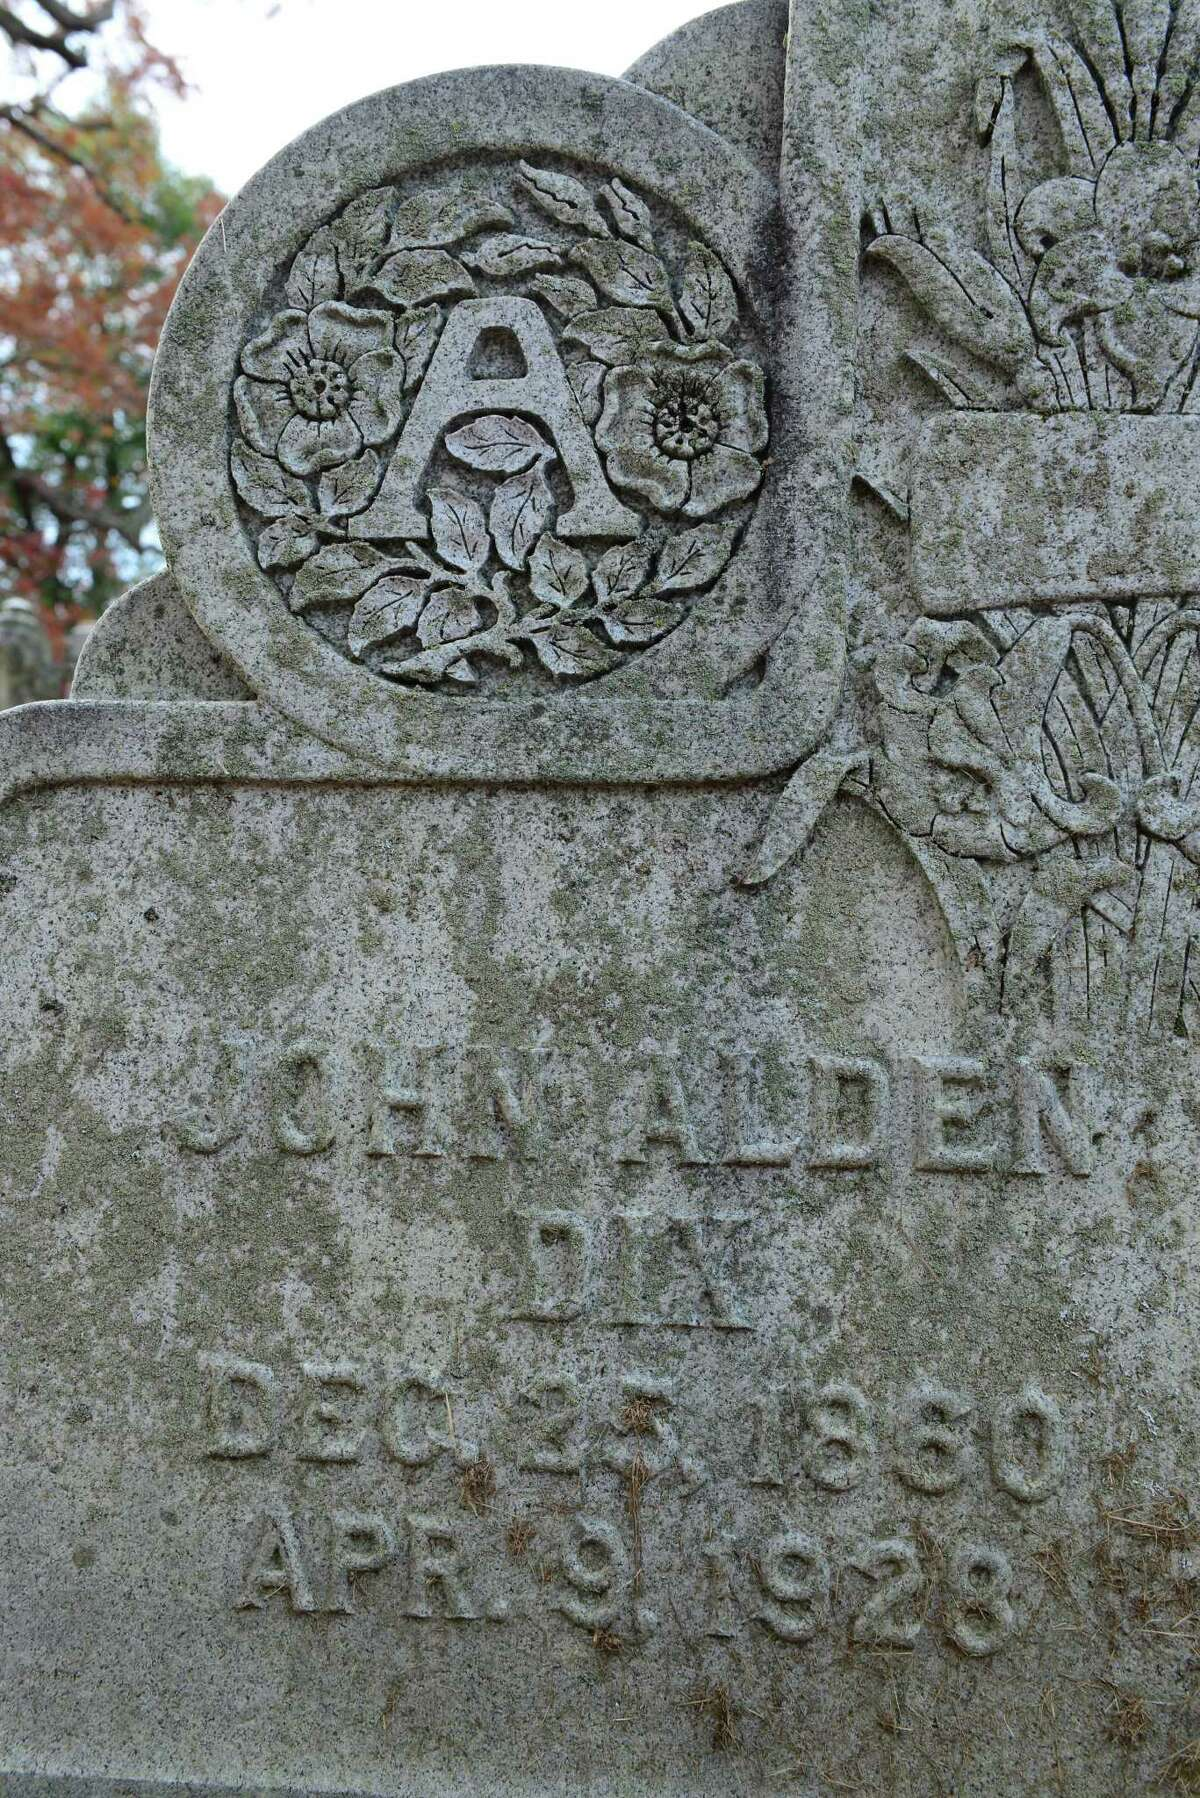 The headstone of John Alden Dix in section 41 of Albany Rural Cemetery in Menands, N.Y. Dix was a former governor of New York. Dix Range in the Adirondacks is named after him. (Will Waldron/Times Union)